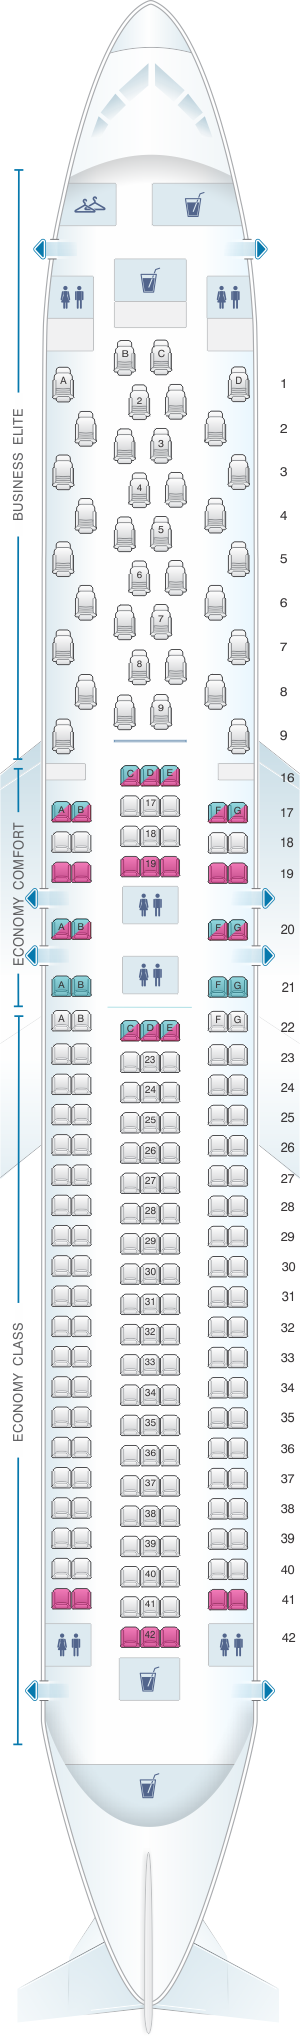 Seat map for Delta Airlines Boeing B767 300 (76L)